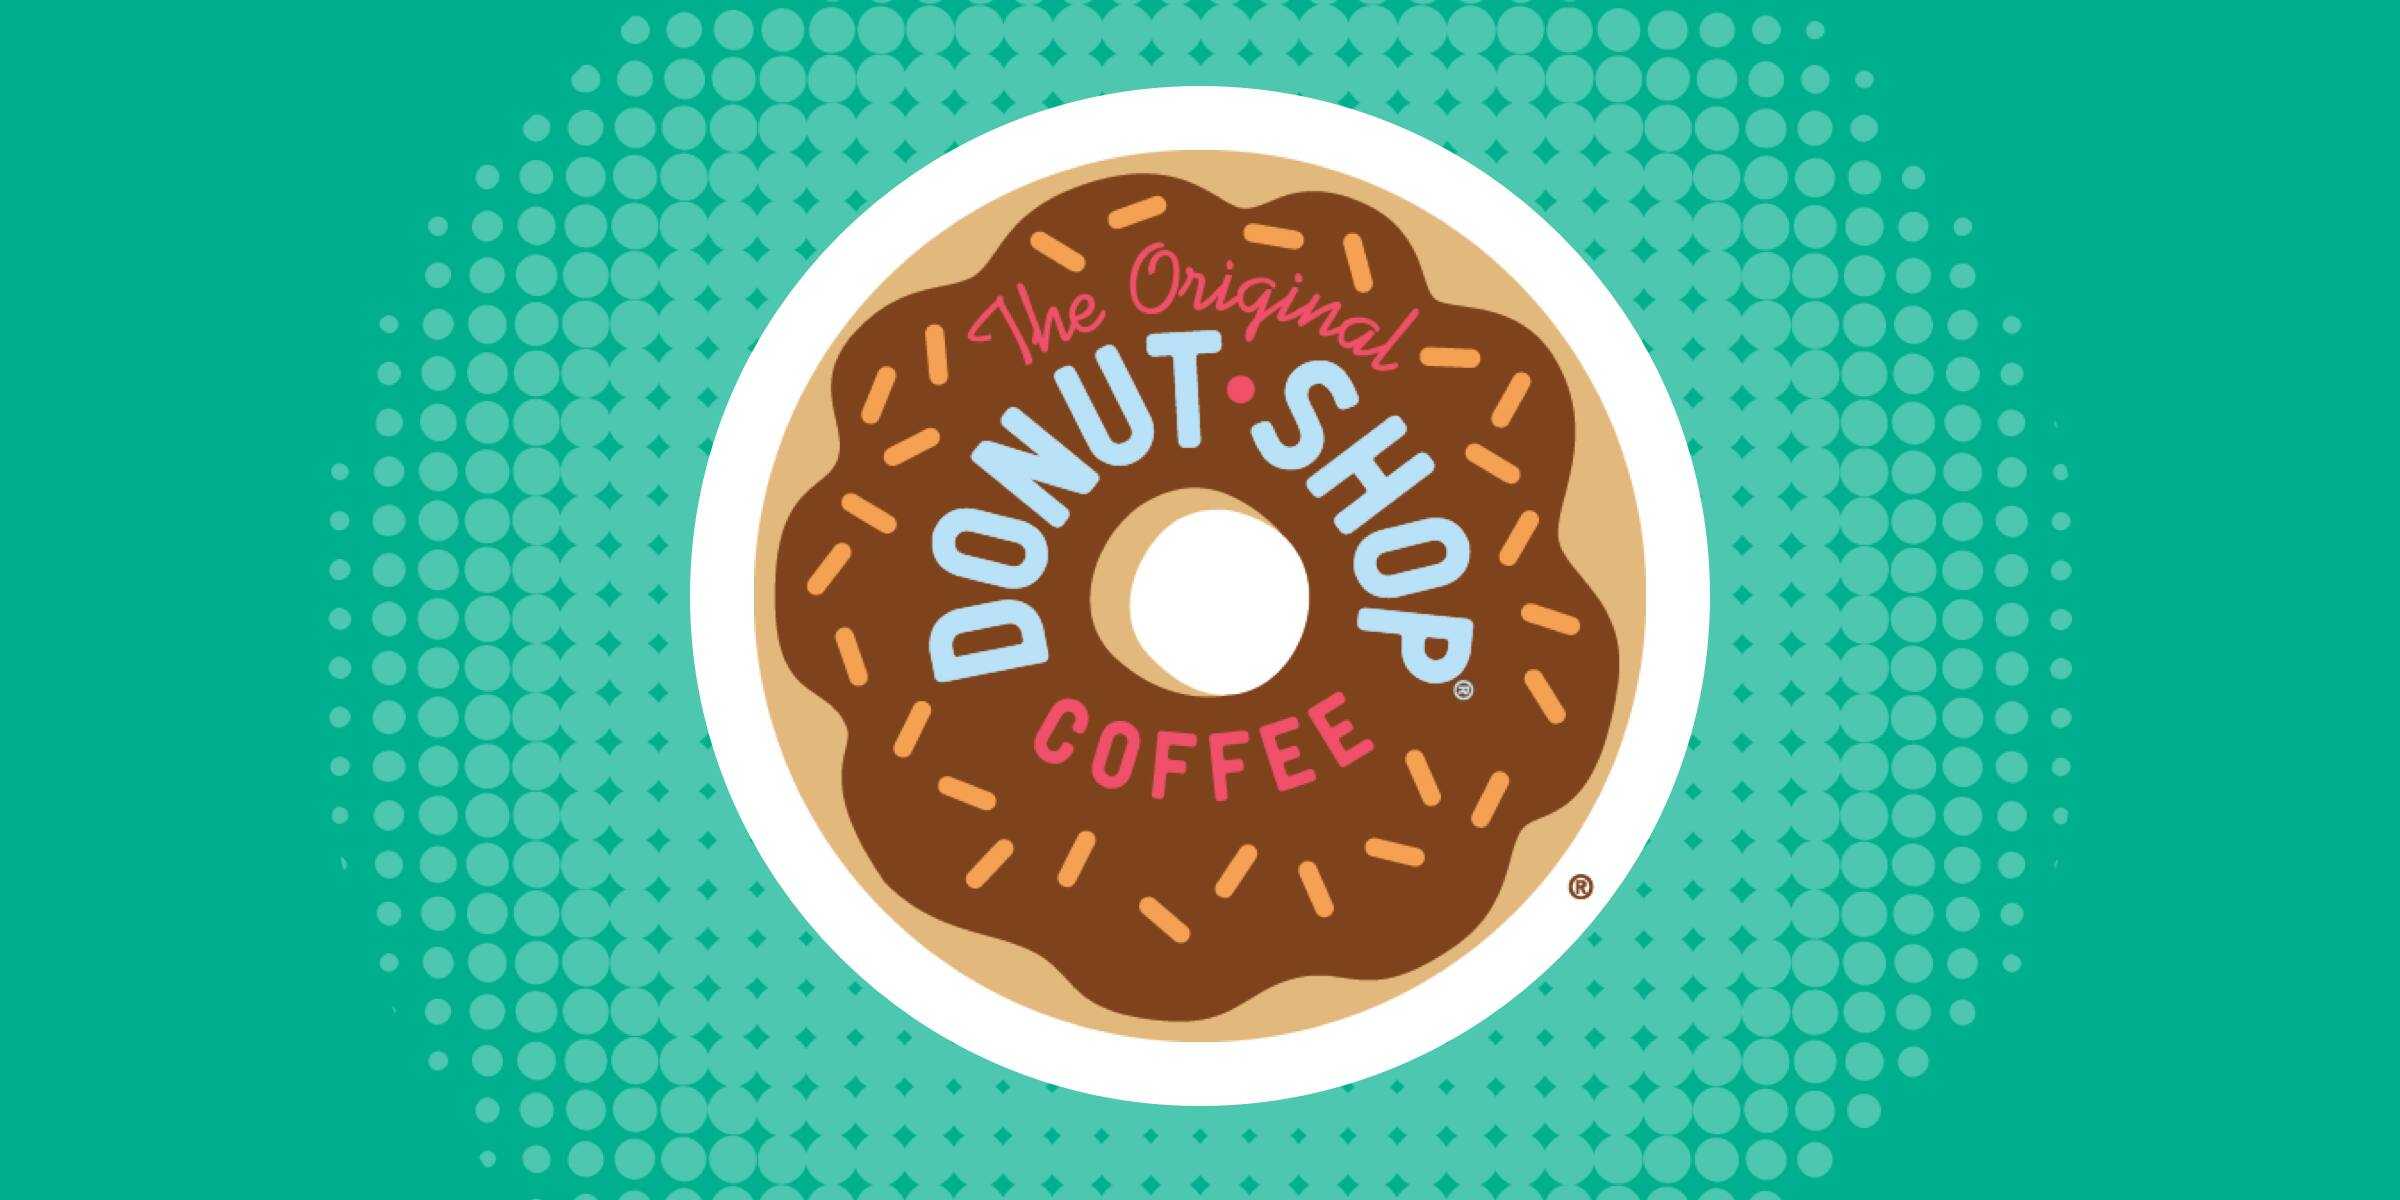 delicious donut shop coffee